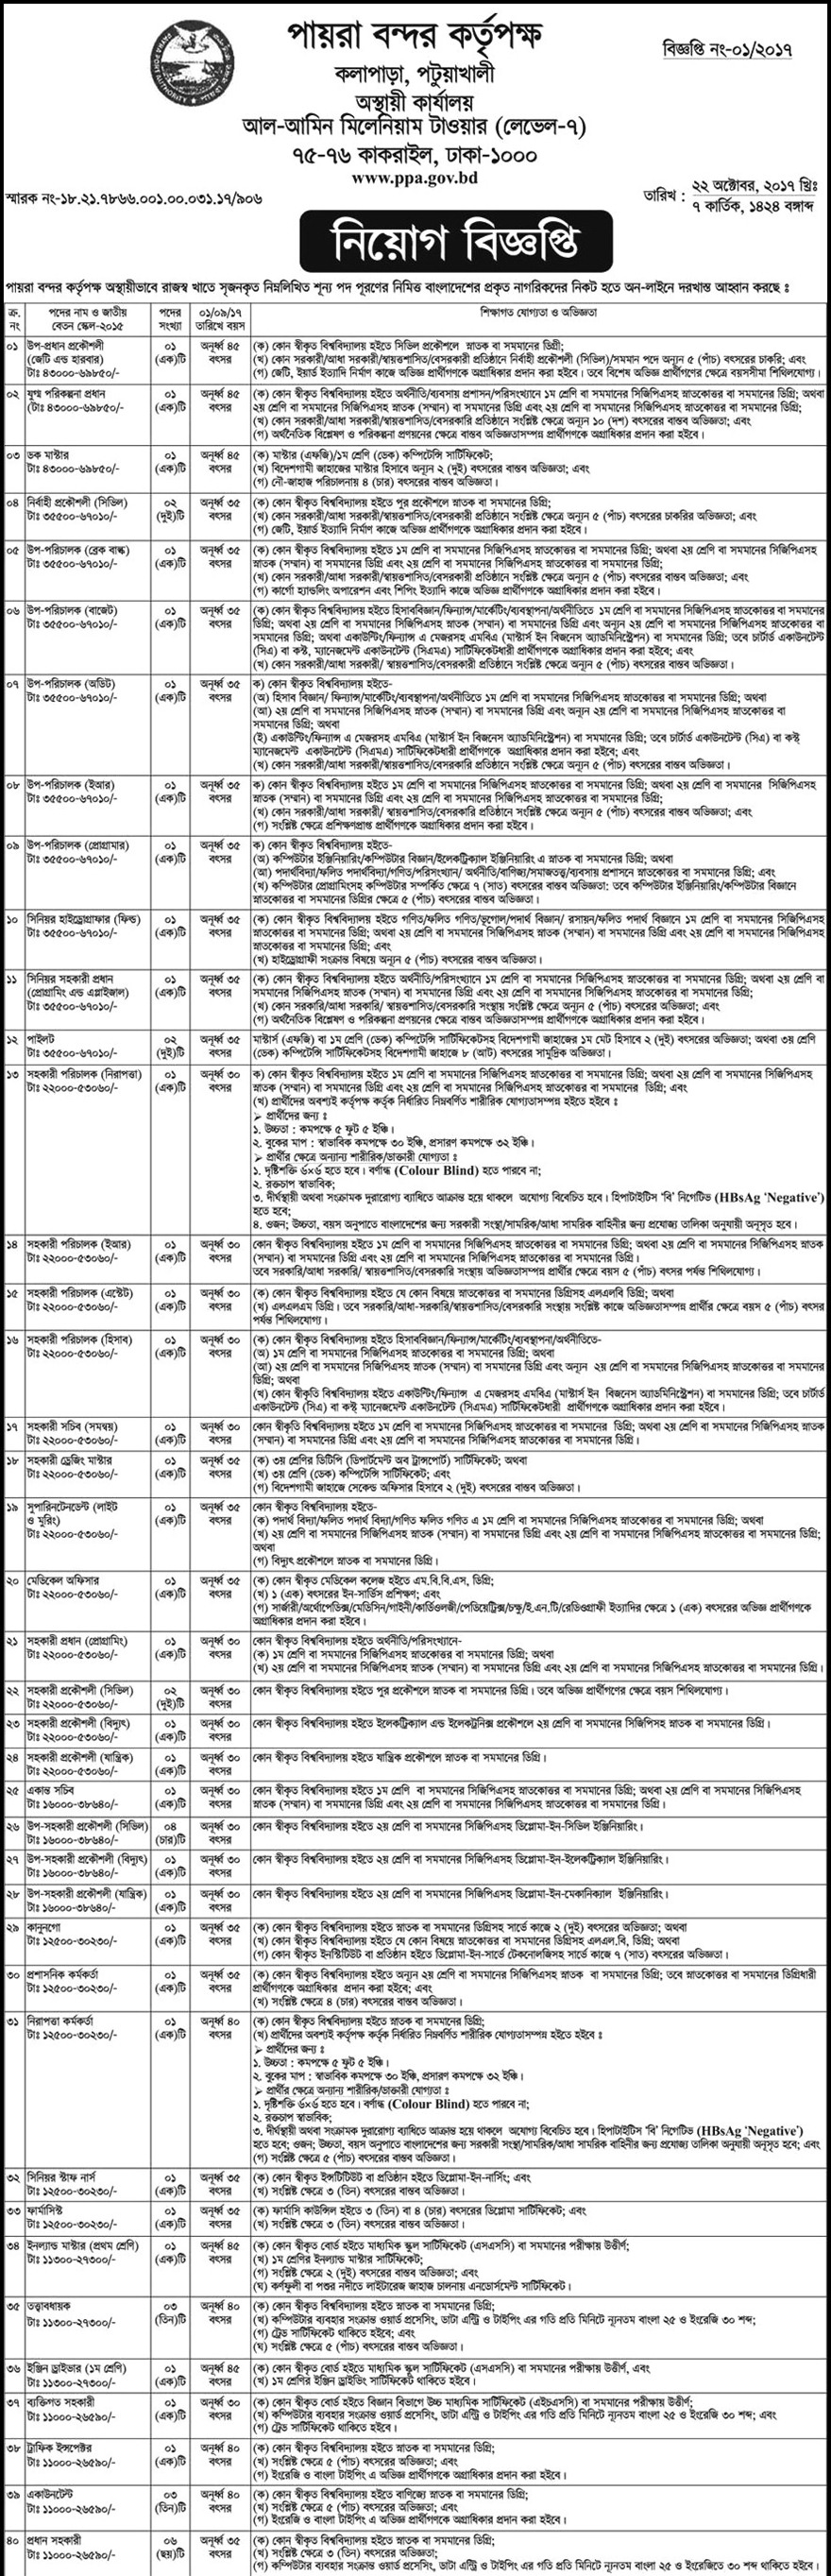 Payra Port Authority jobs